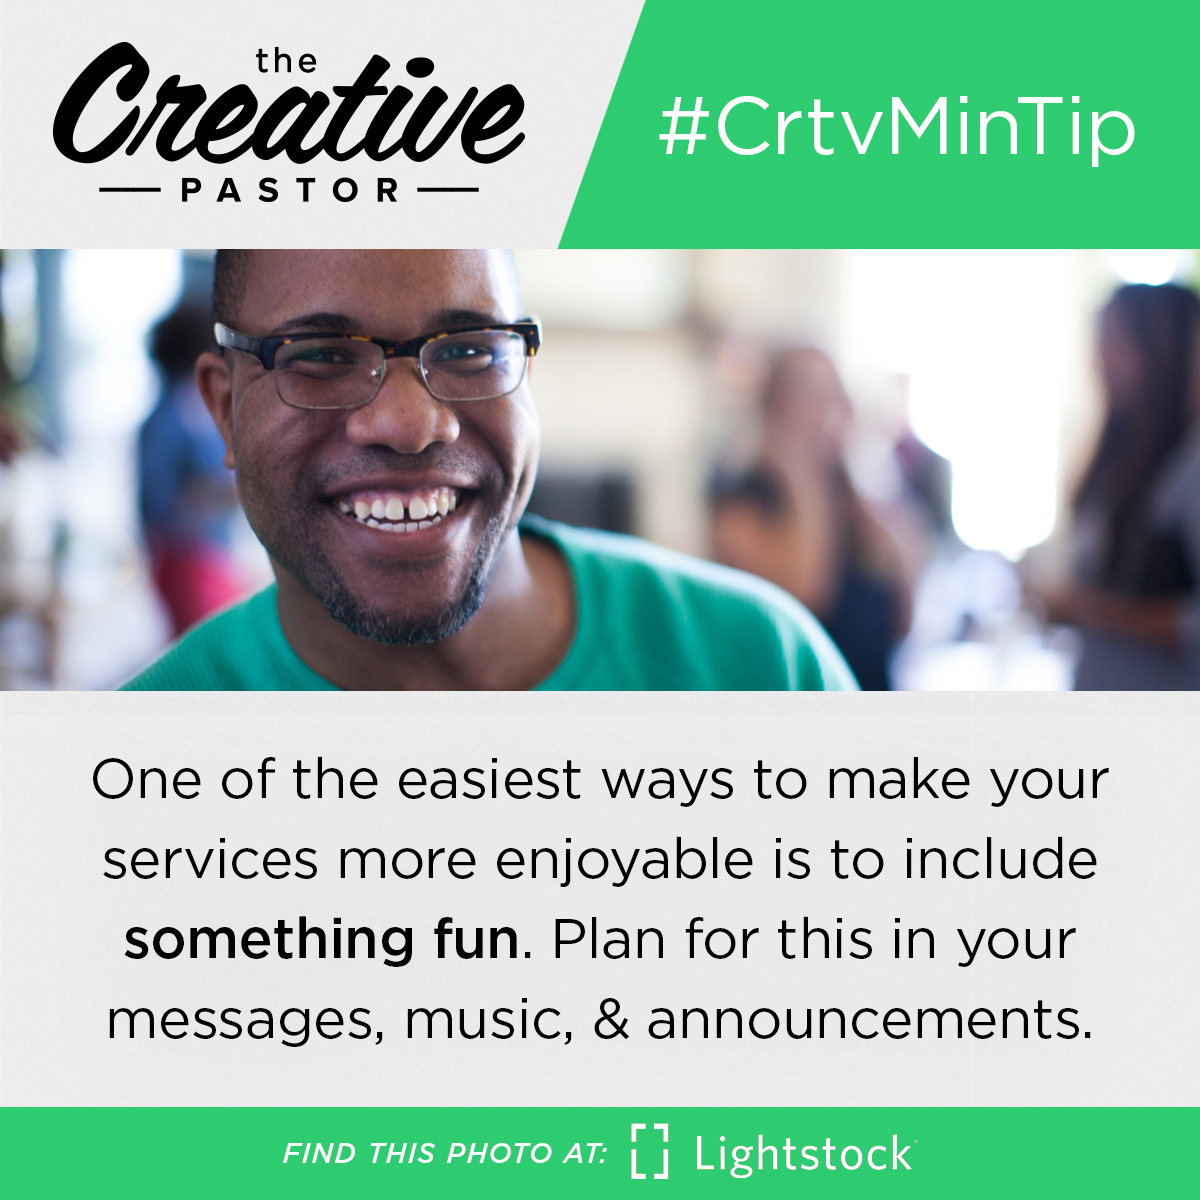 #CrtvMinTip: One of the easiest ways to make your services more enjoyable is to include something fun. Plan for this in your messages, music, and announcements.